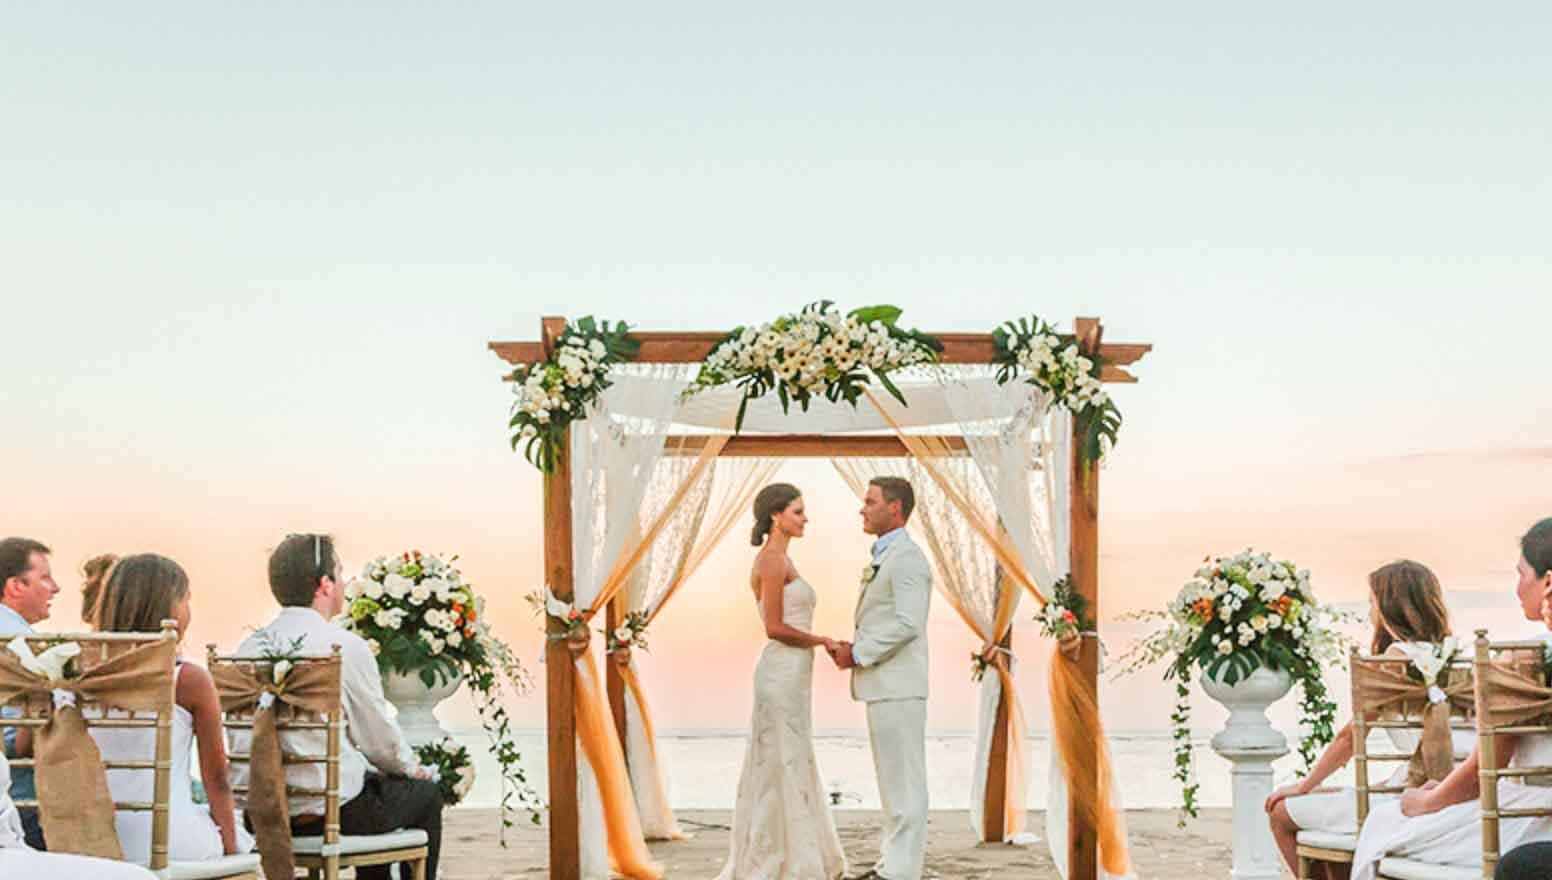 Ma Joly Sunset Beach Wedding Venue (30 - 100 Pax) Inclusive of Photograph & Videography + Makeup & Hair + Decorations